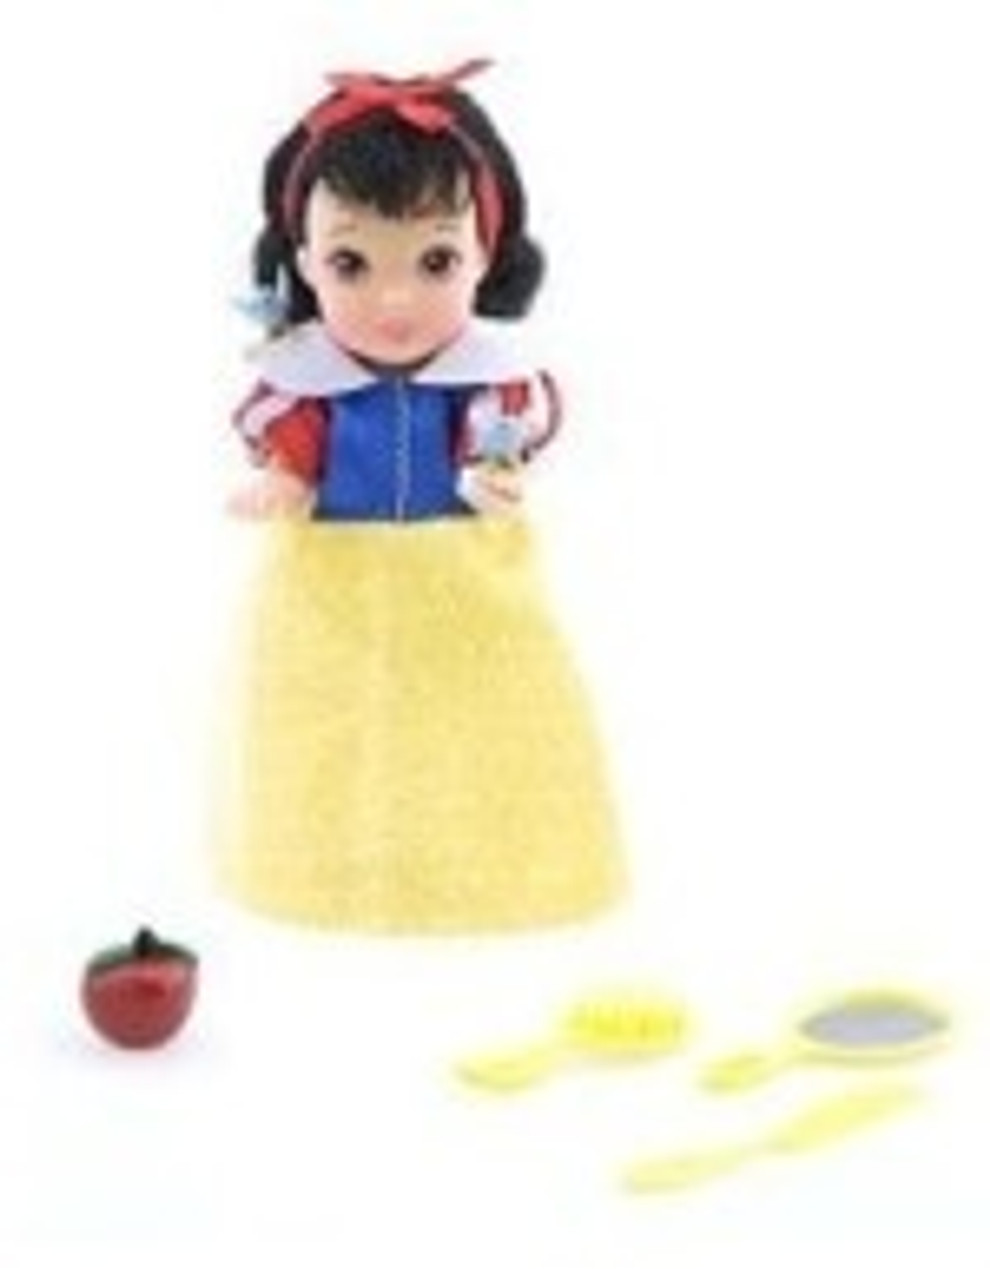 Snow White 4 Little Princess Doll Play Set Buy Movies At Margarita S Video Store